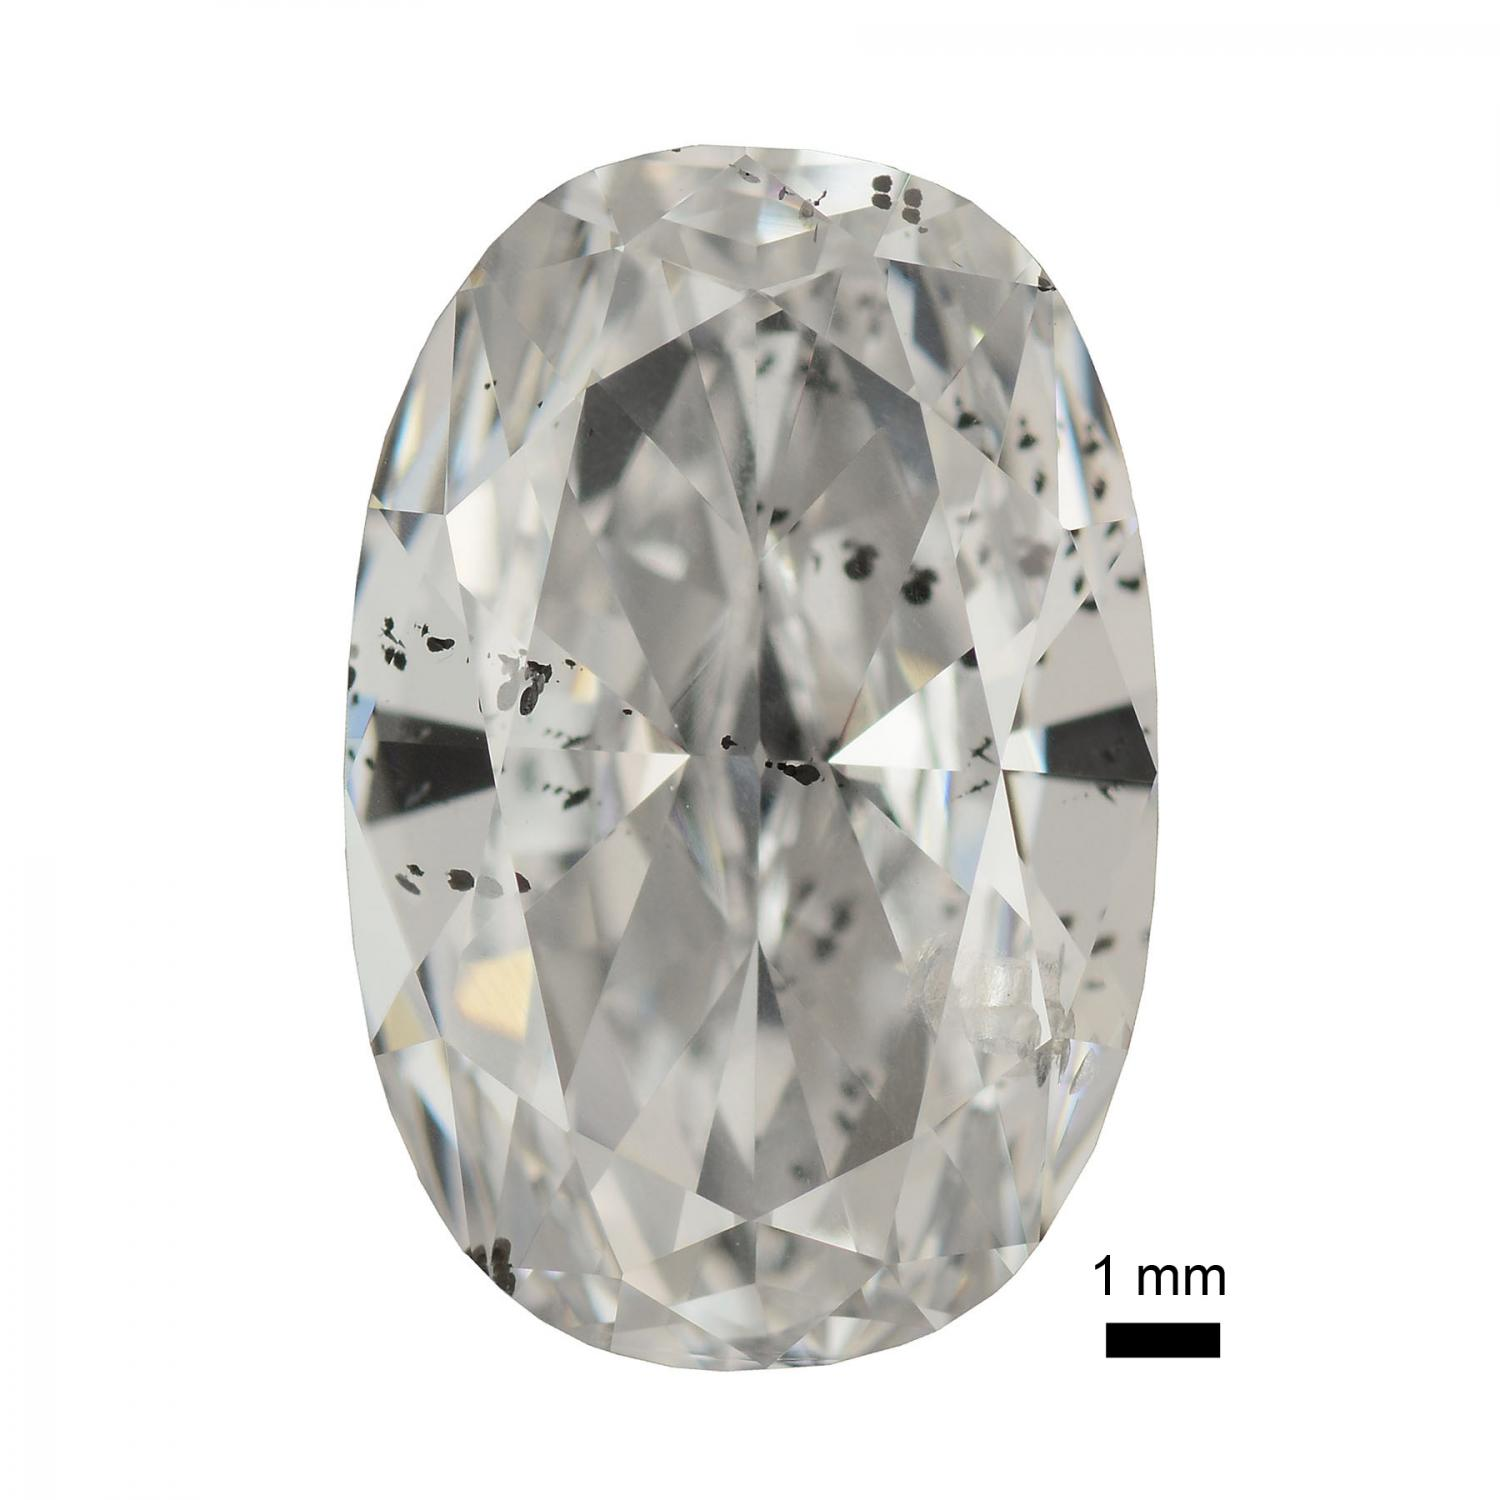 astounding good karat price best carat diamond quality cool amazing ideas nice high